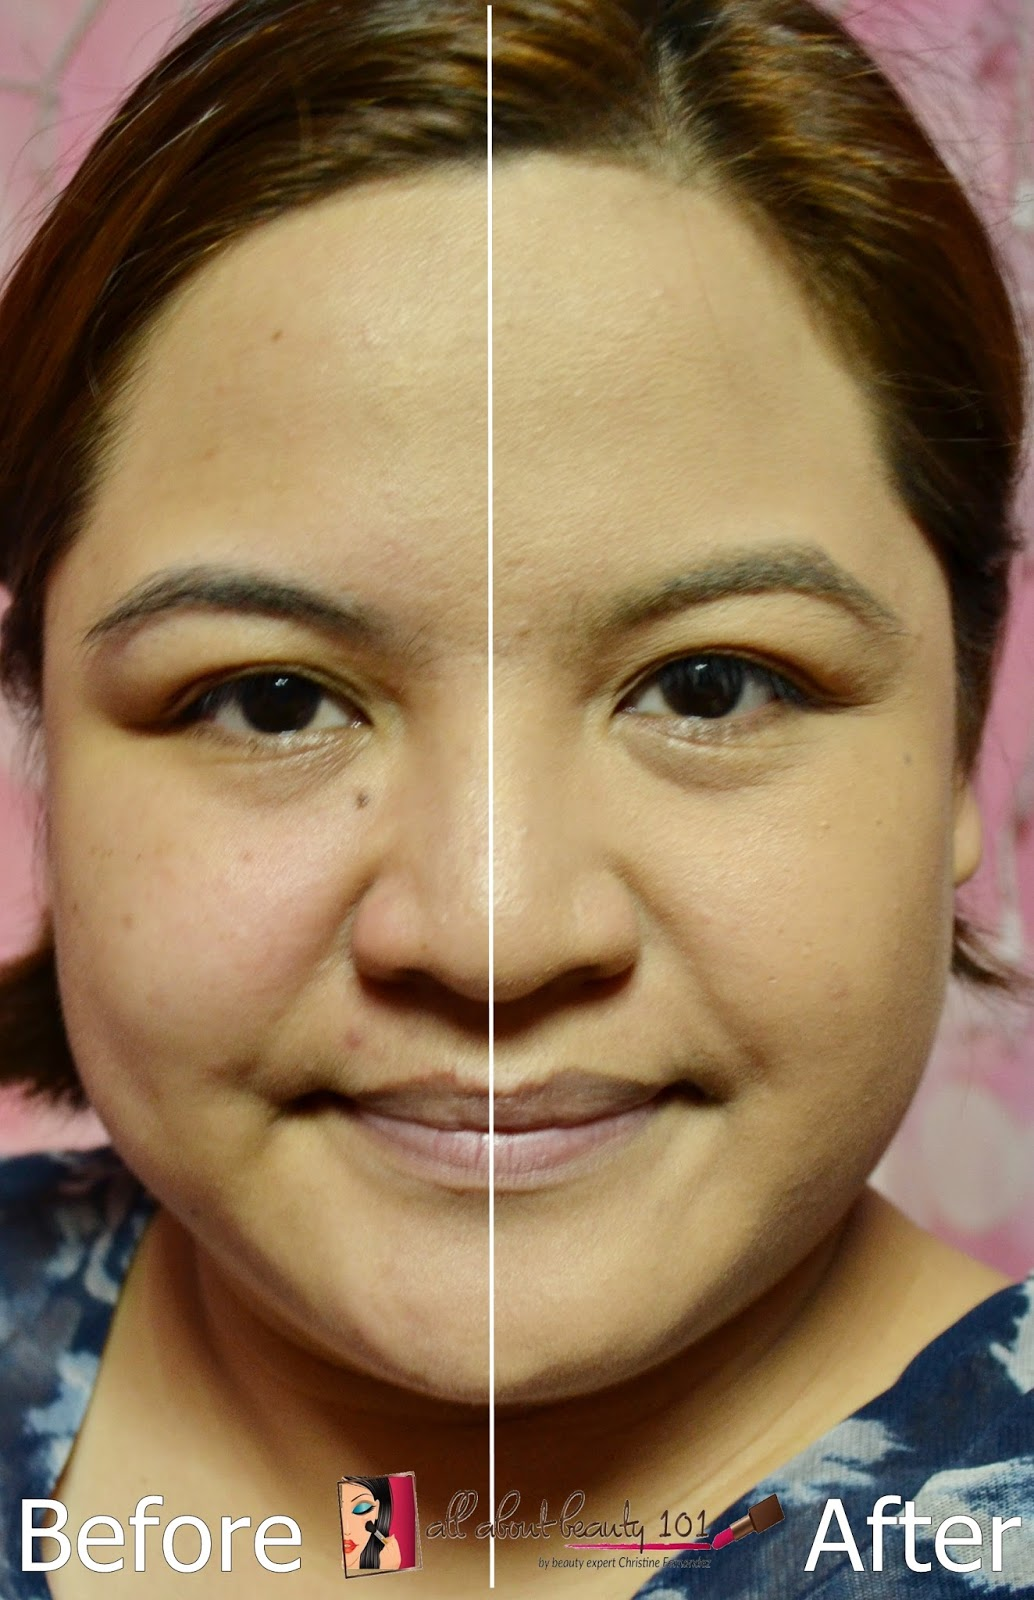 Maybelline Super Bb Fresh Matte Cushion In Natural Give Away Sand Beige Compare The Coverage Did On My Skin